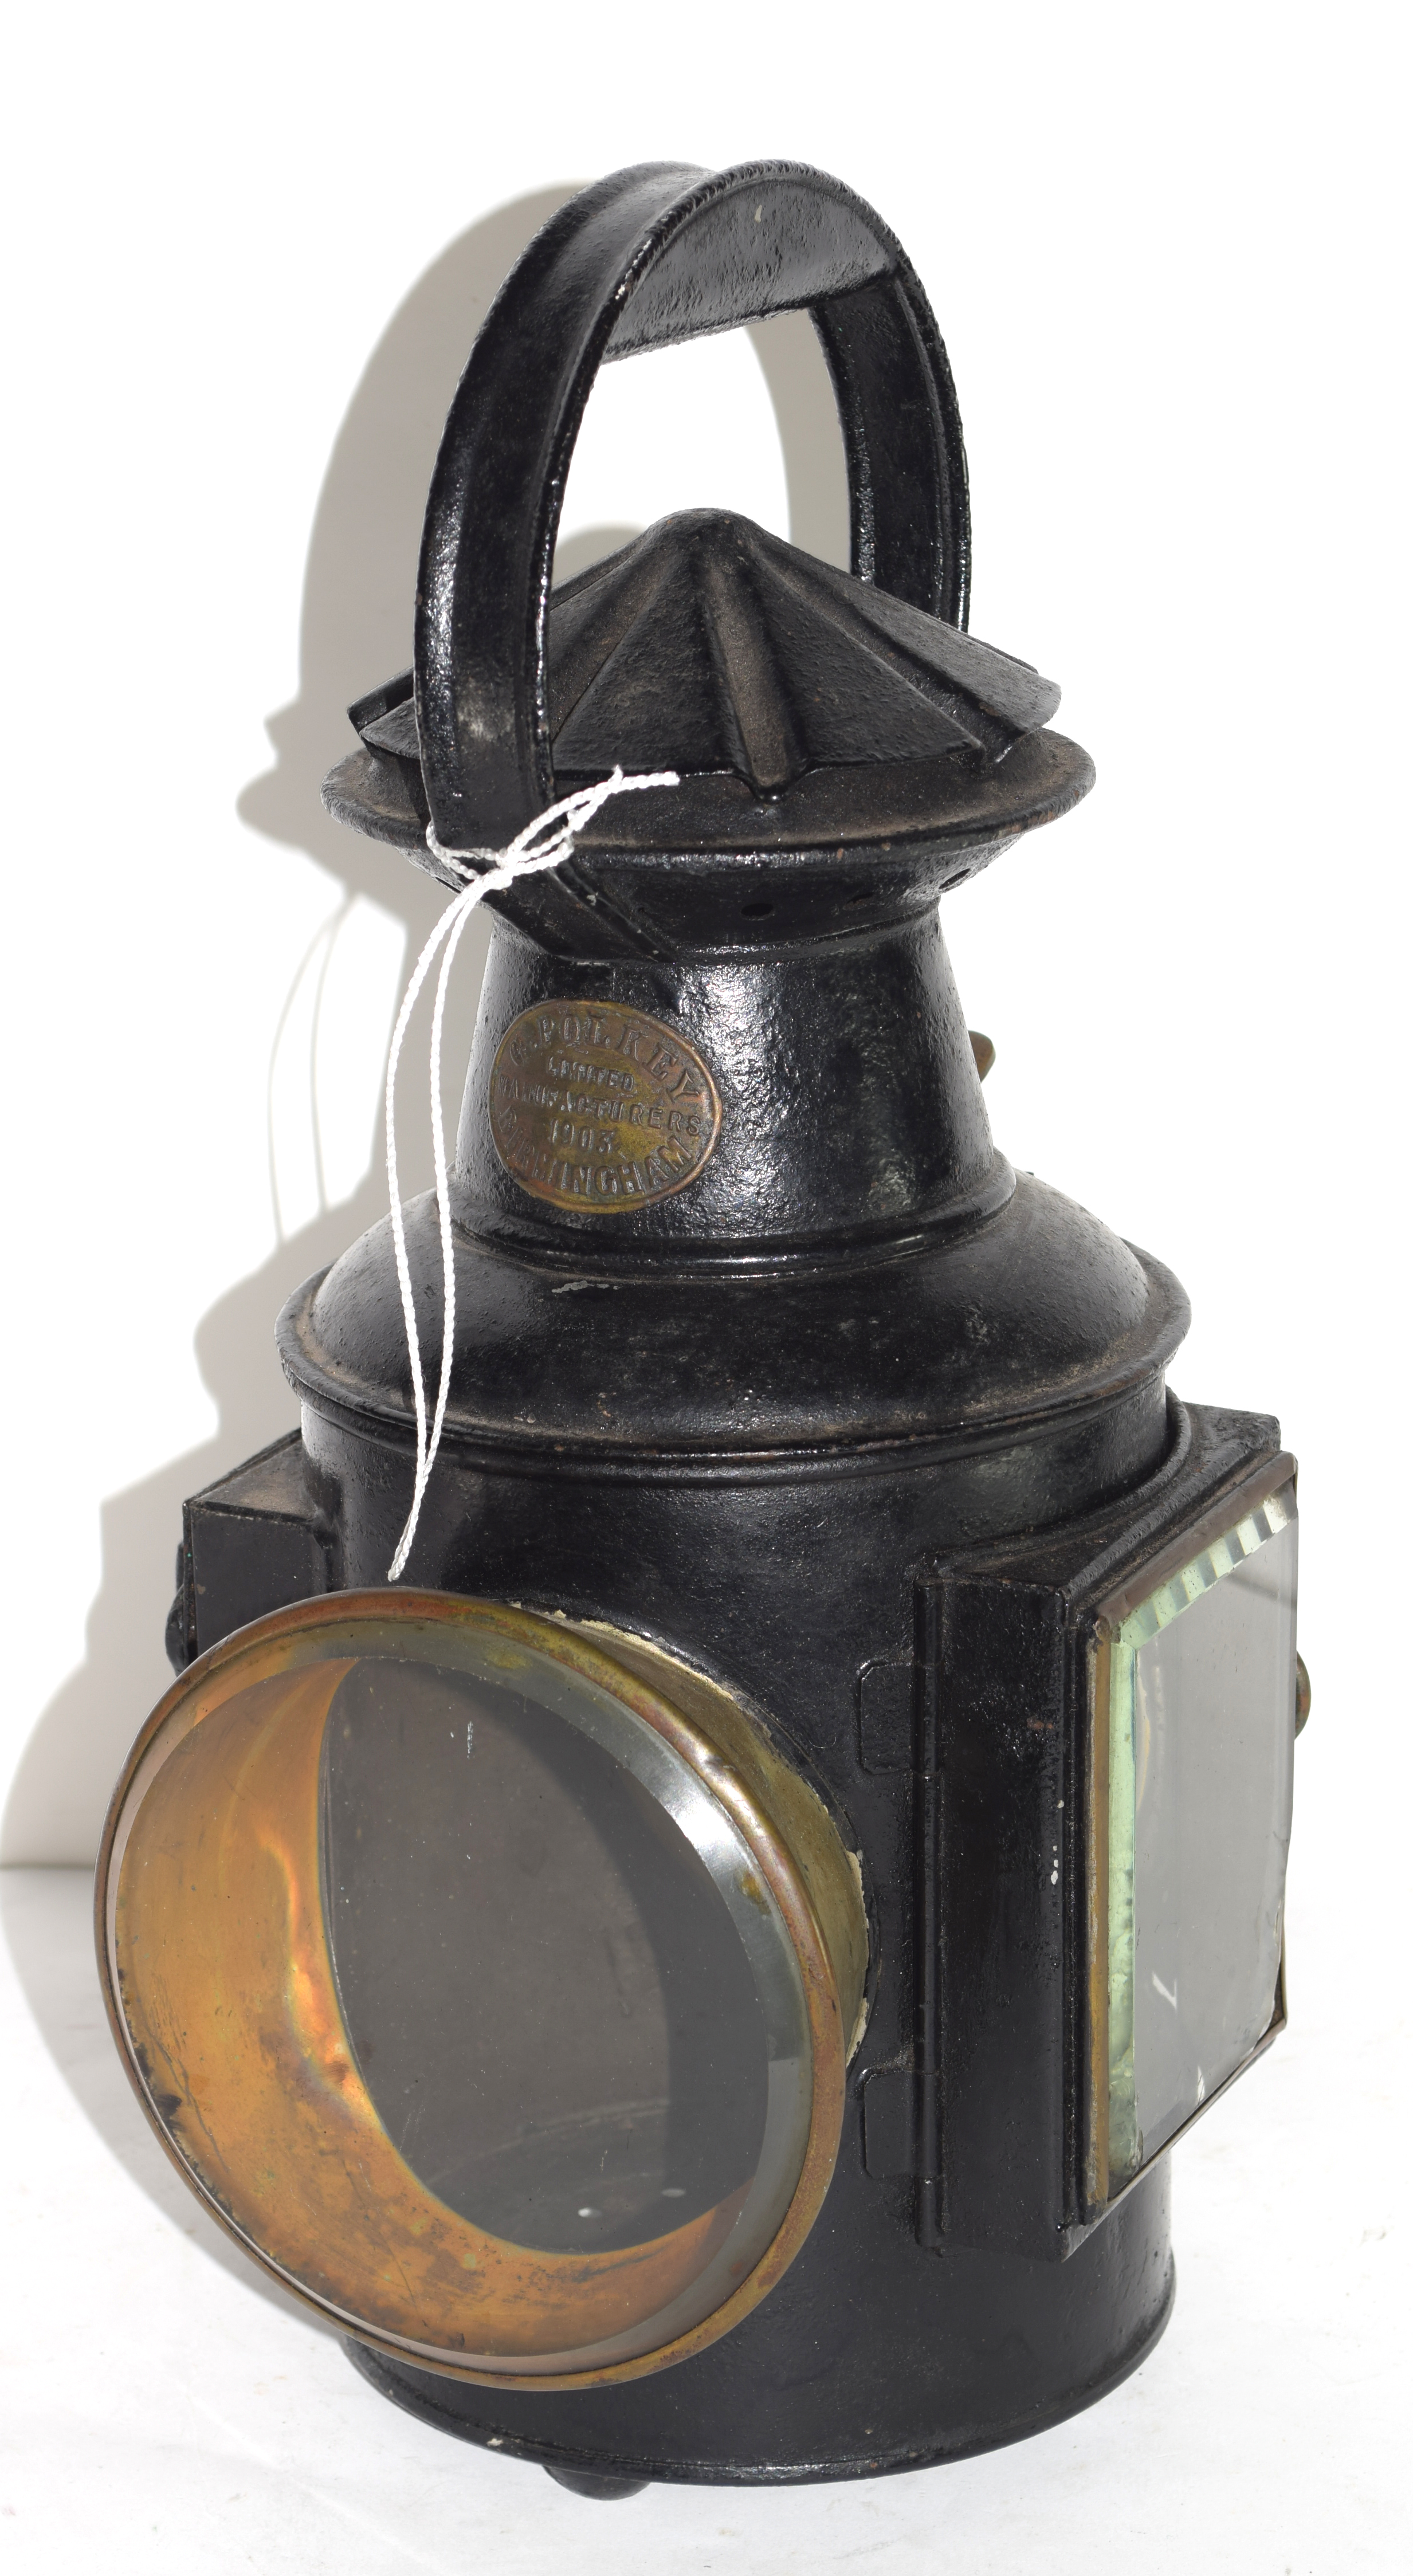 Railway light with stamp for G Polkey, 1903, Birmingham - Image 2 of 6